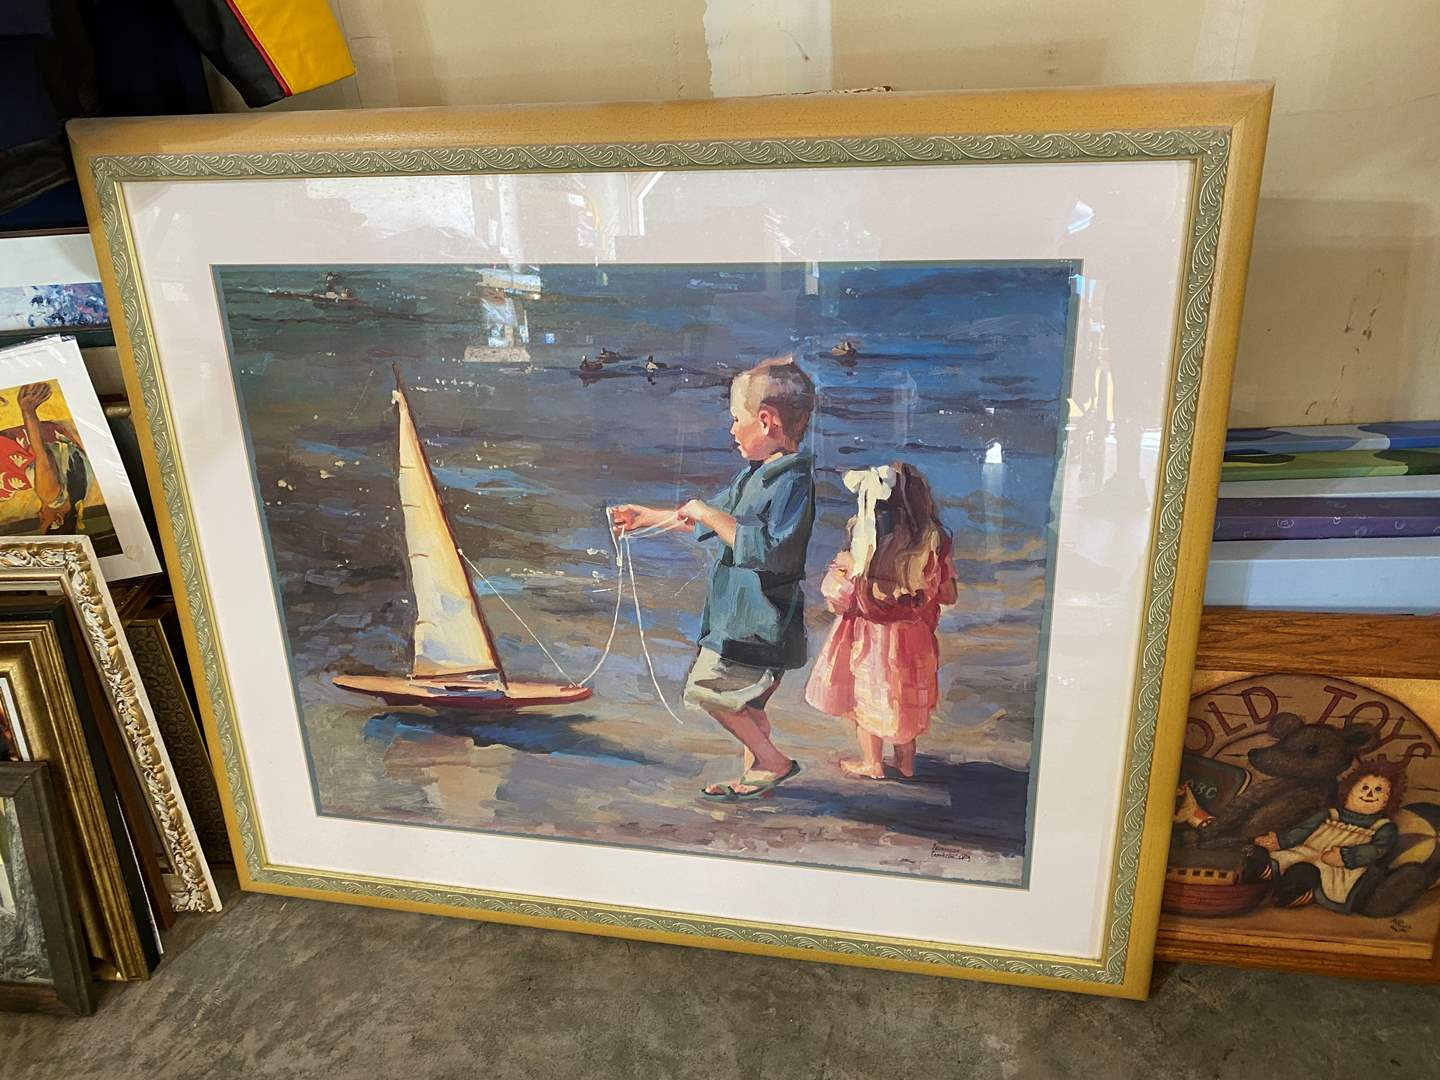 """Lot # 206 - Framed Artwork """"Smooth Sailing"""" by Crookston (main image)"""